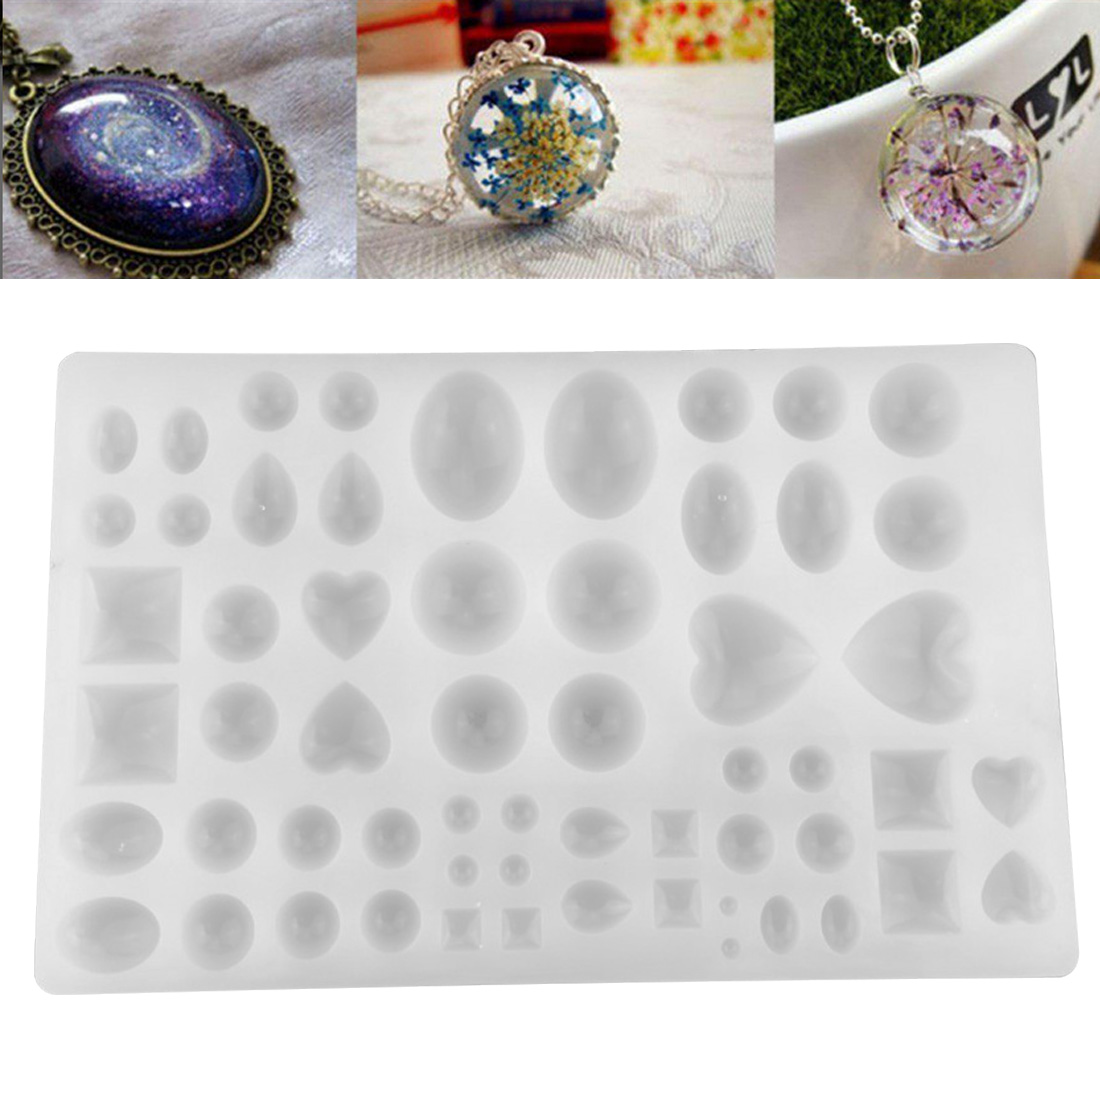 Silicon Mold Mould Many Kinds Of Diamonds DIY handmade Ear Studs Pendant Epoxy transparent silicone mould in Jewelry Tools Equipments from Jewelry Accessories